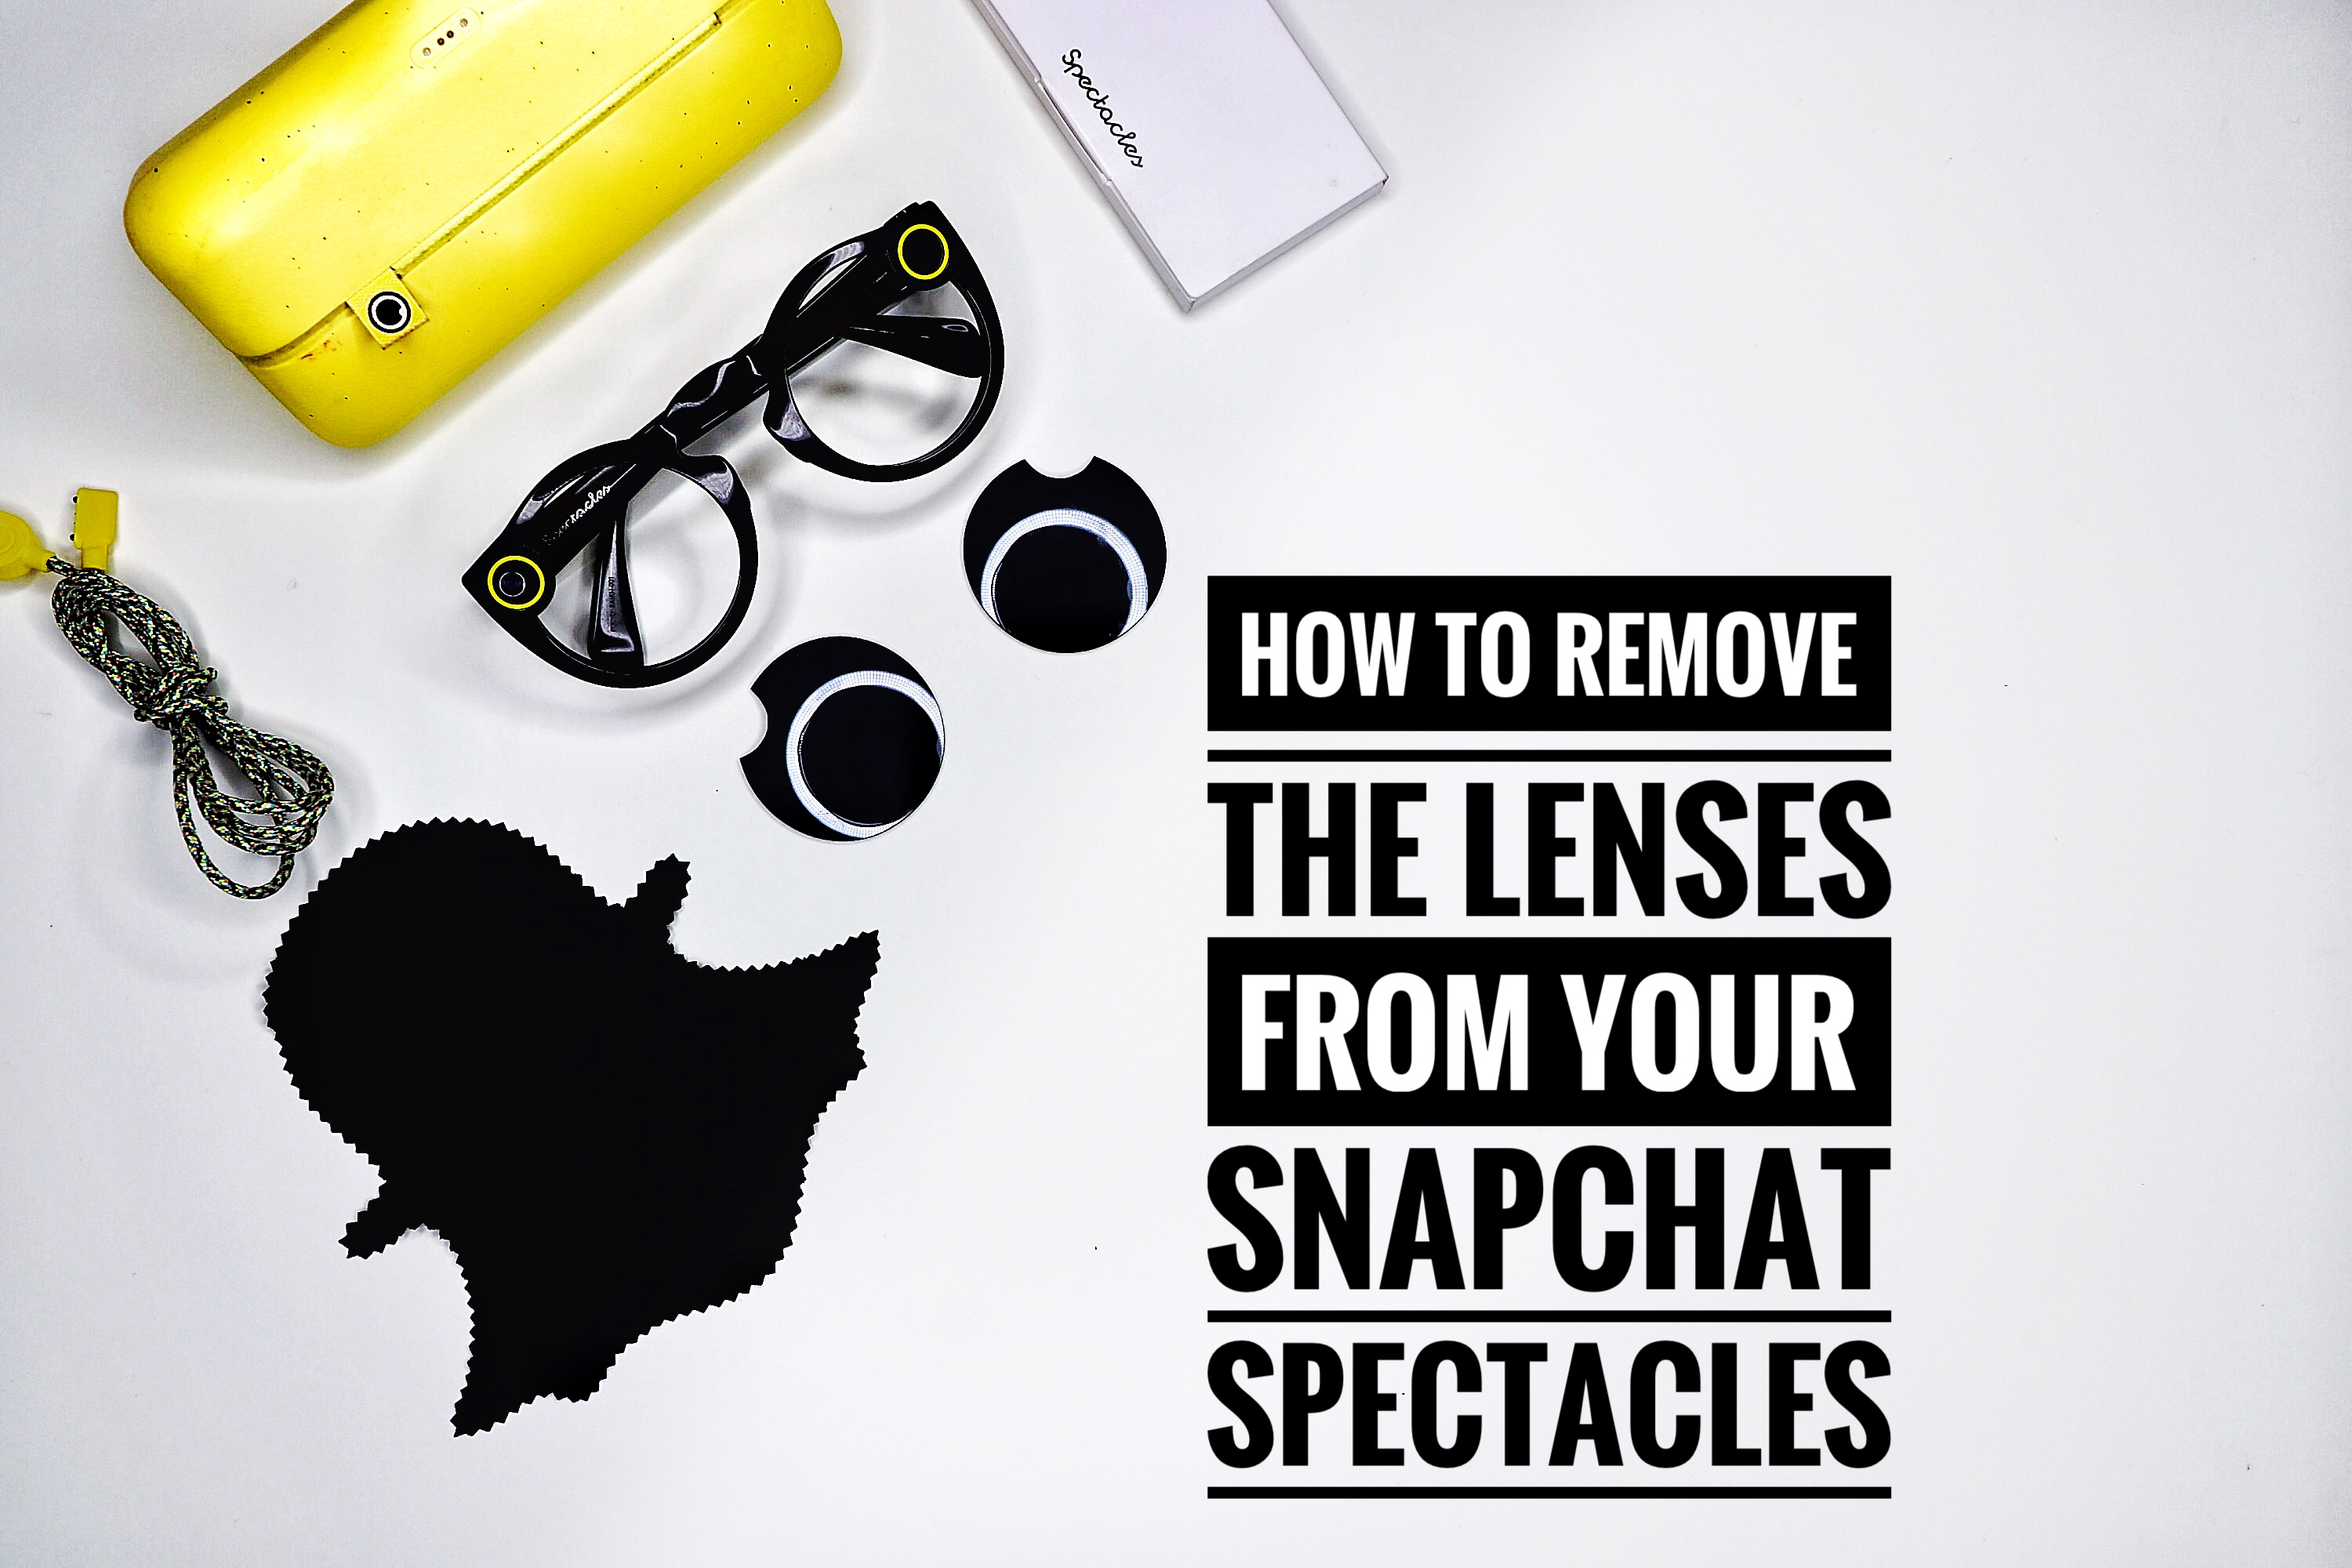 33c9dc40d5 How to remove the lenses from your Snapchat Spectacles